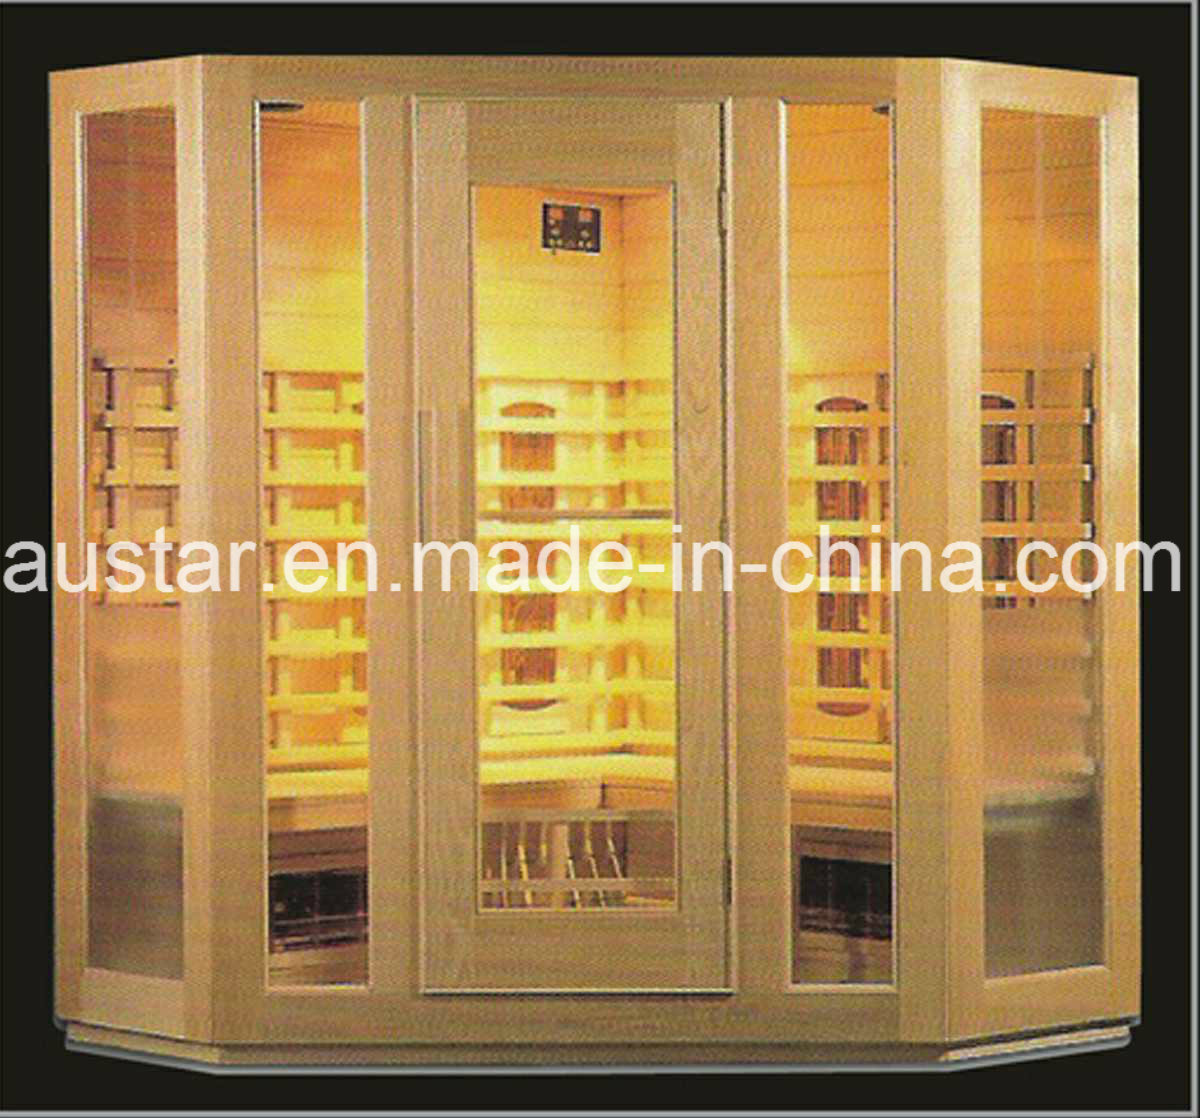 Solid Wood Infrared Sauna with Customized Size (AT-8603)